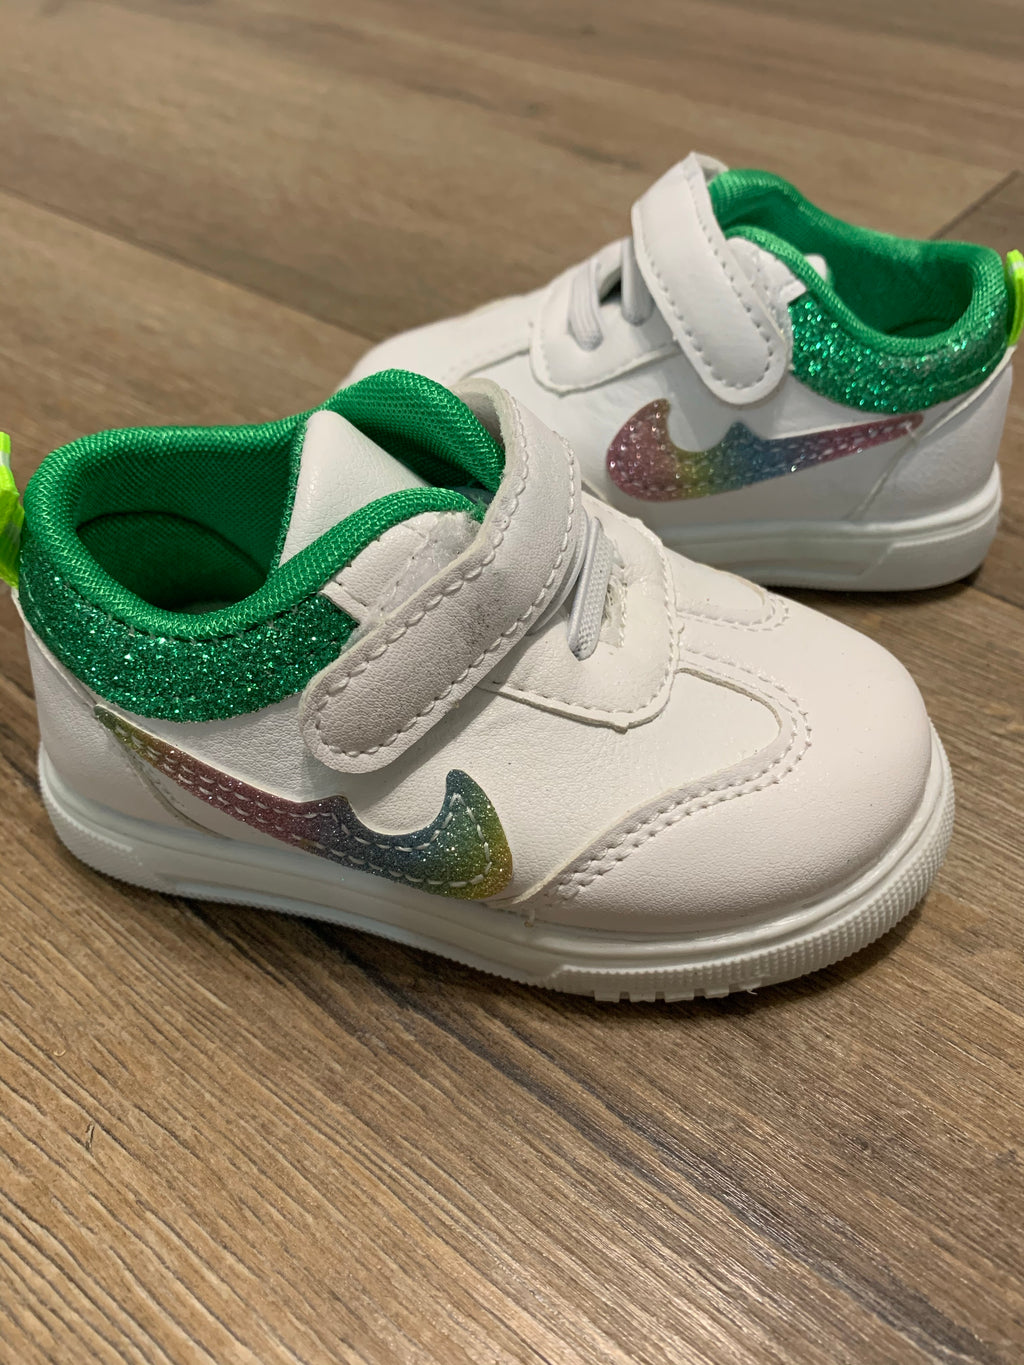 Kids-Shoes-Glitter-Kicks-In-Green